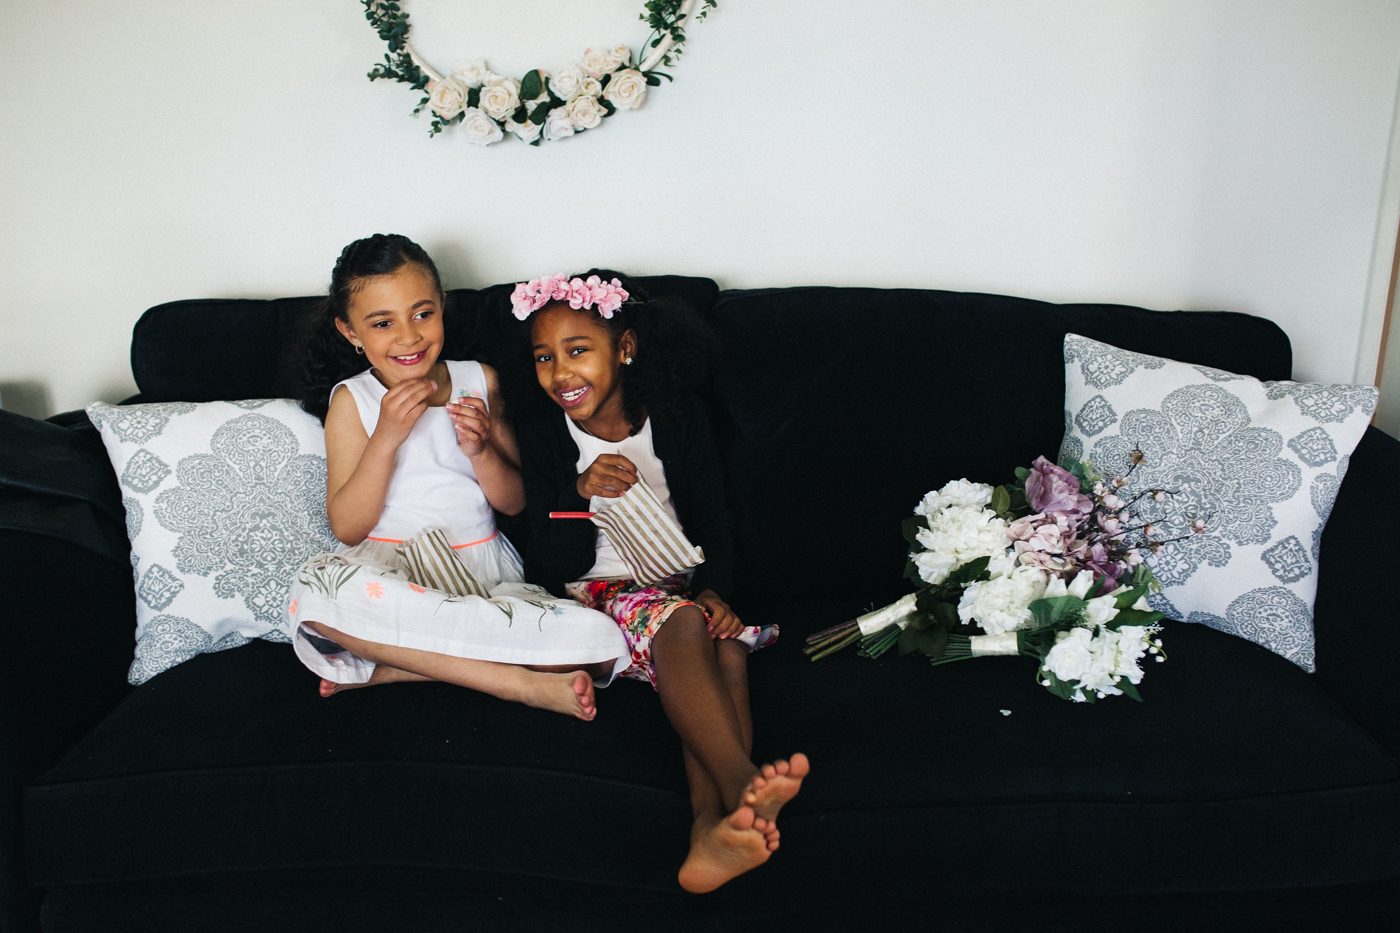 two girls sit together on a couch. relaxed teesside middlesbrough wedding photographer, wedding at home